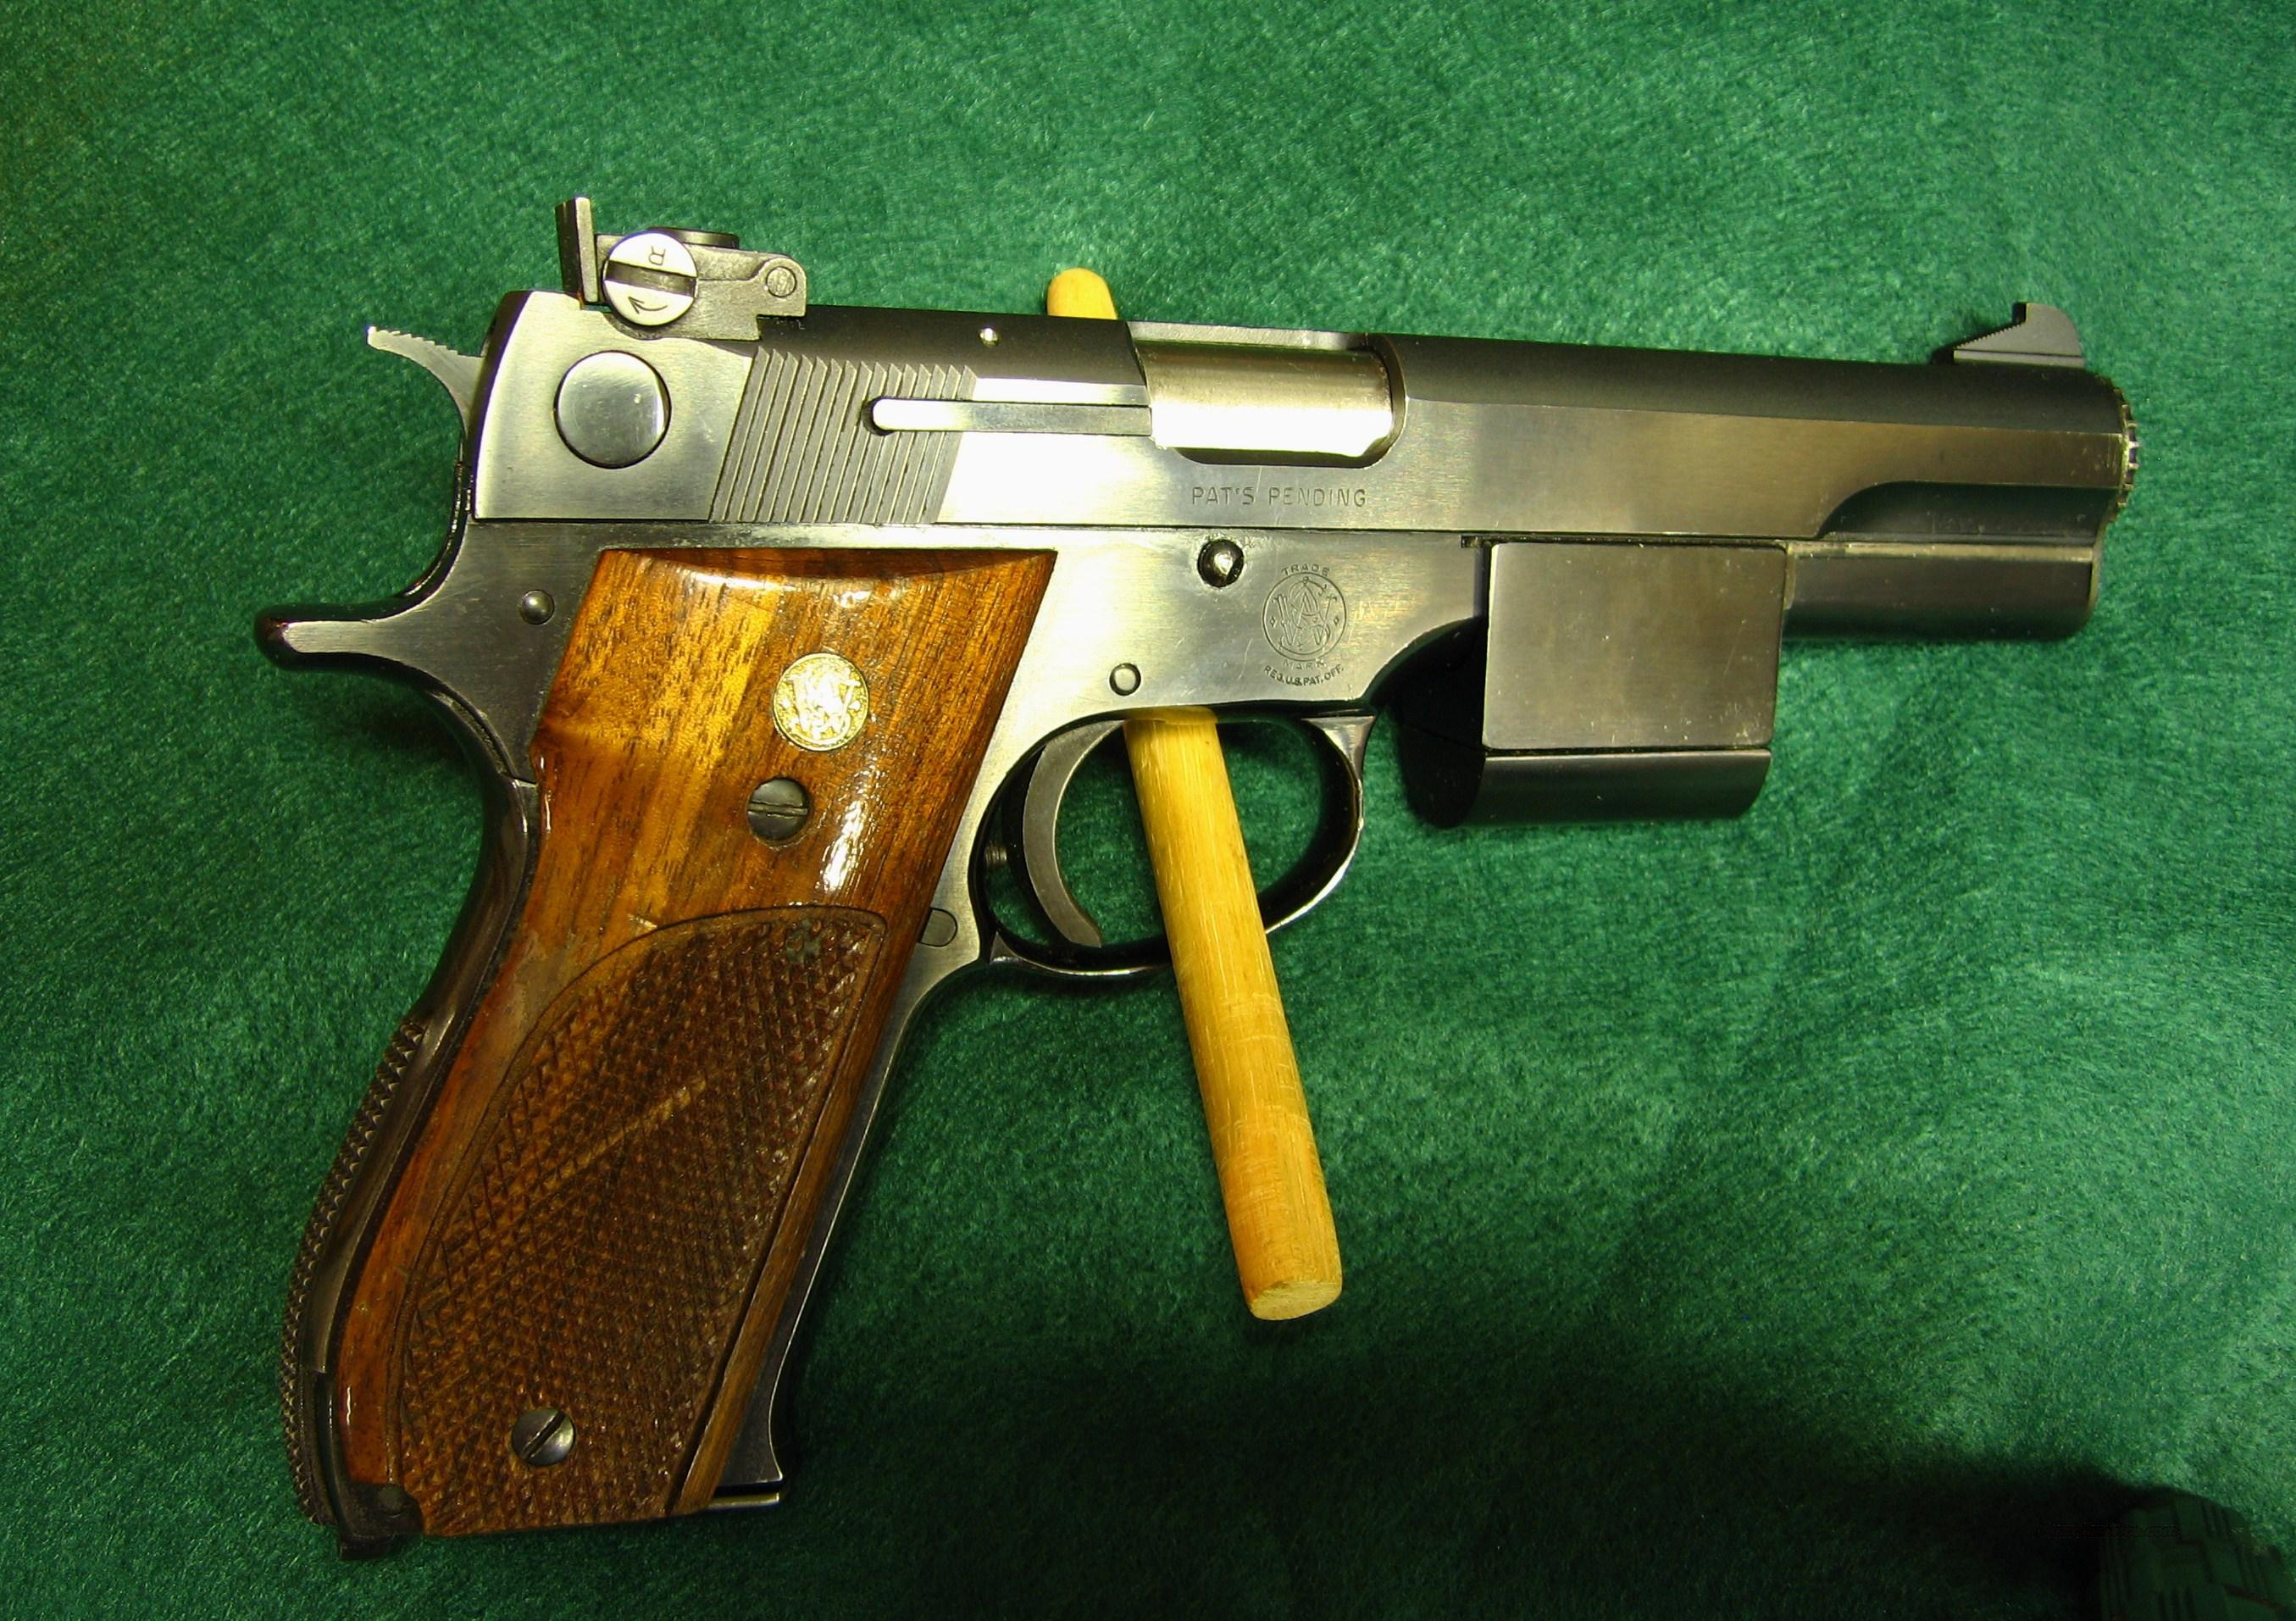 SMITH & WESSON MODEL 52-2 .38 SPECIAL WADCUTTER  Guns > Pistols > Smith & Wesson Pistols - Autos > Steel Frame